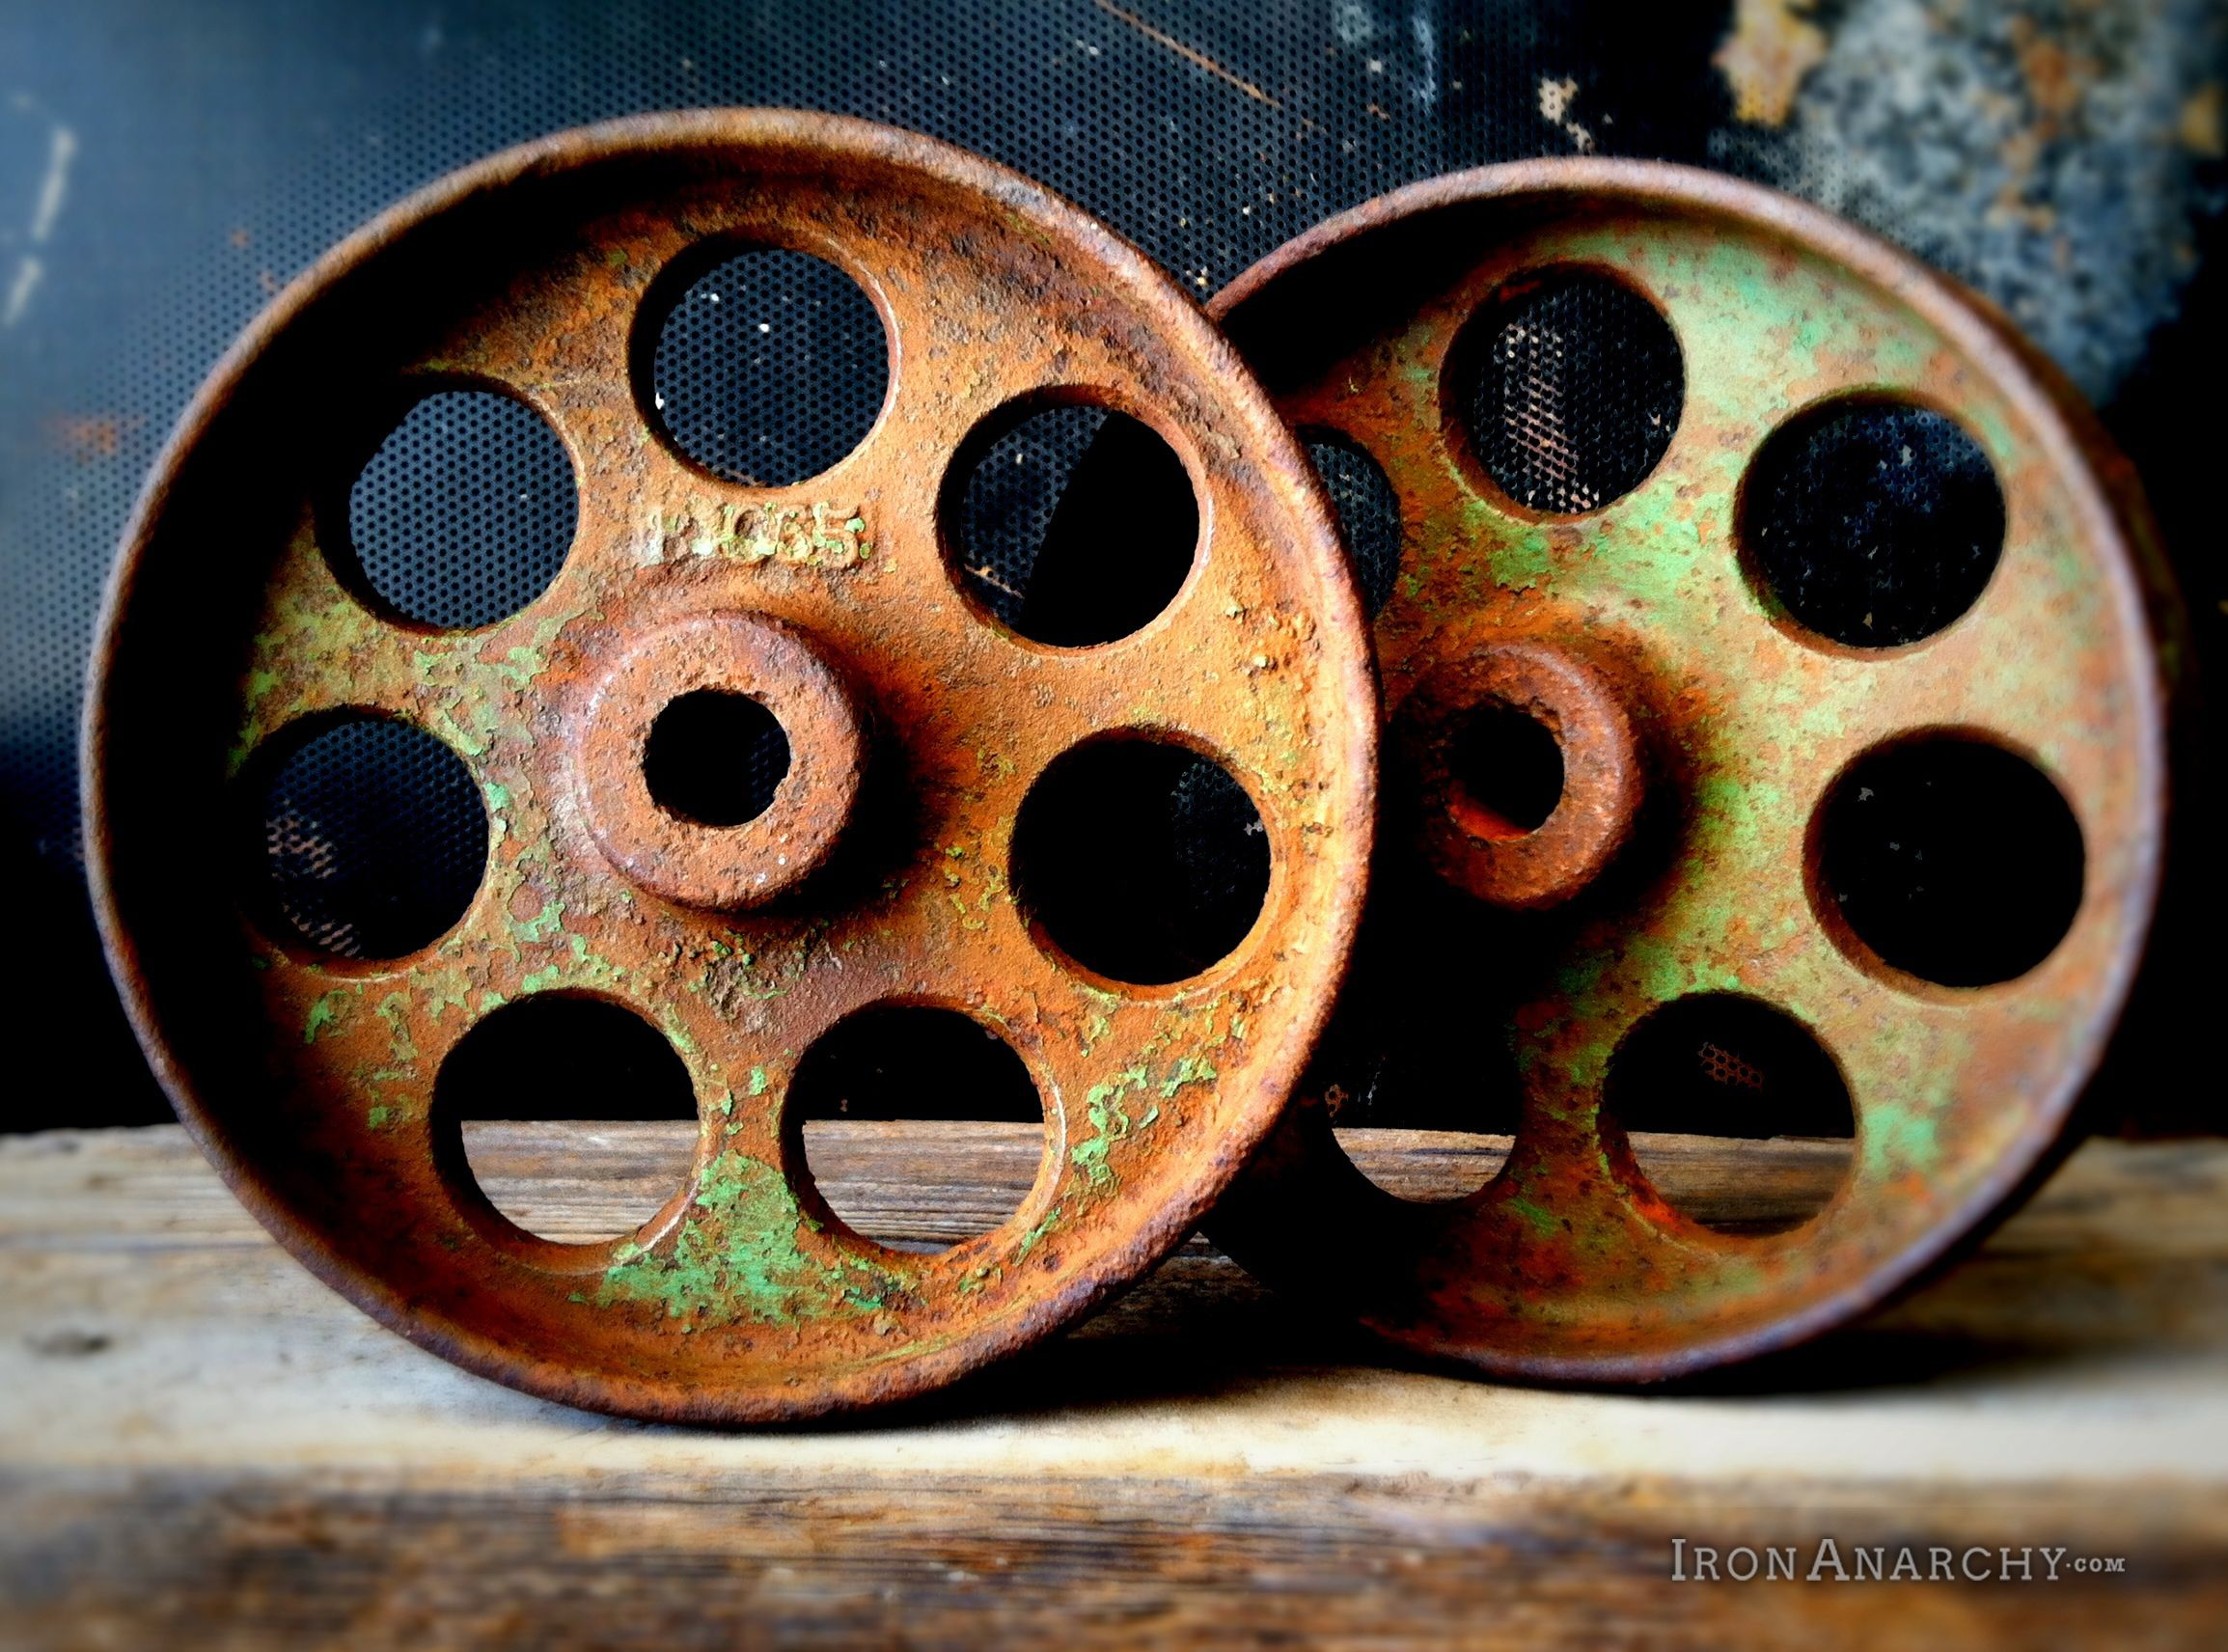 Factory caster vintage industrial furniture - Find This Pin And More On Caster Wheels Industrial Chic Decor Antique